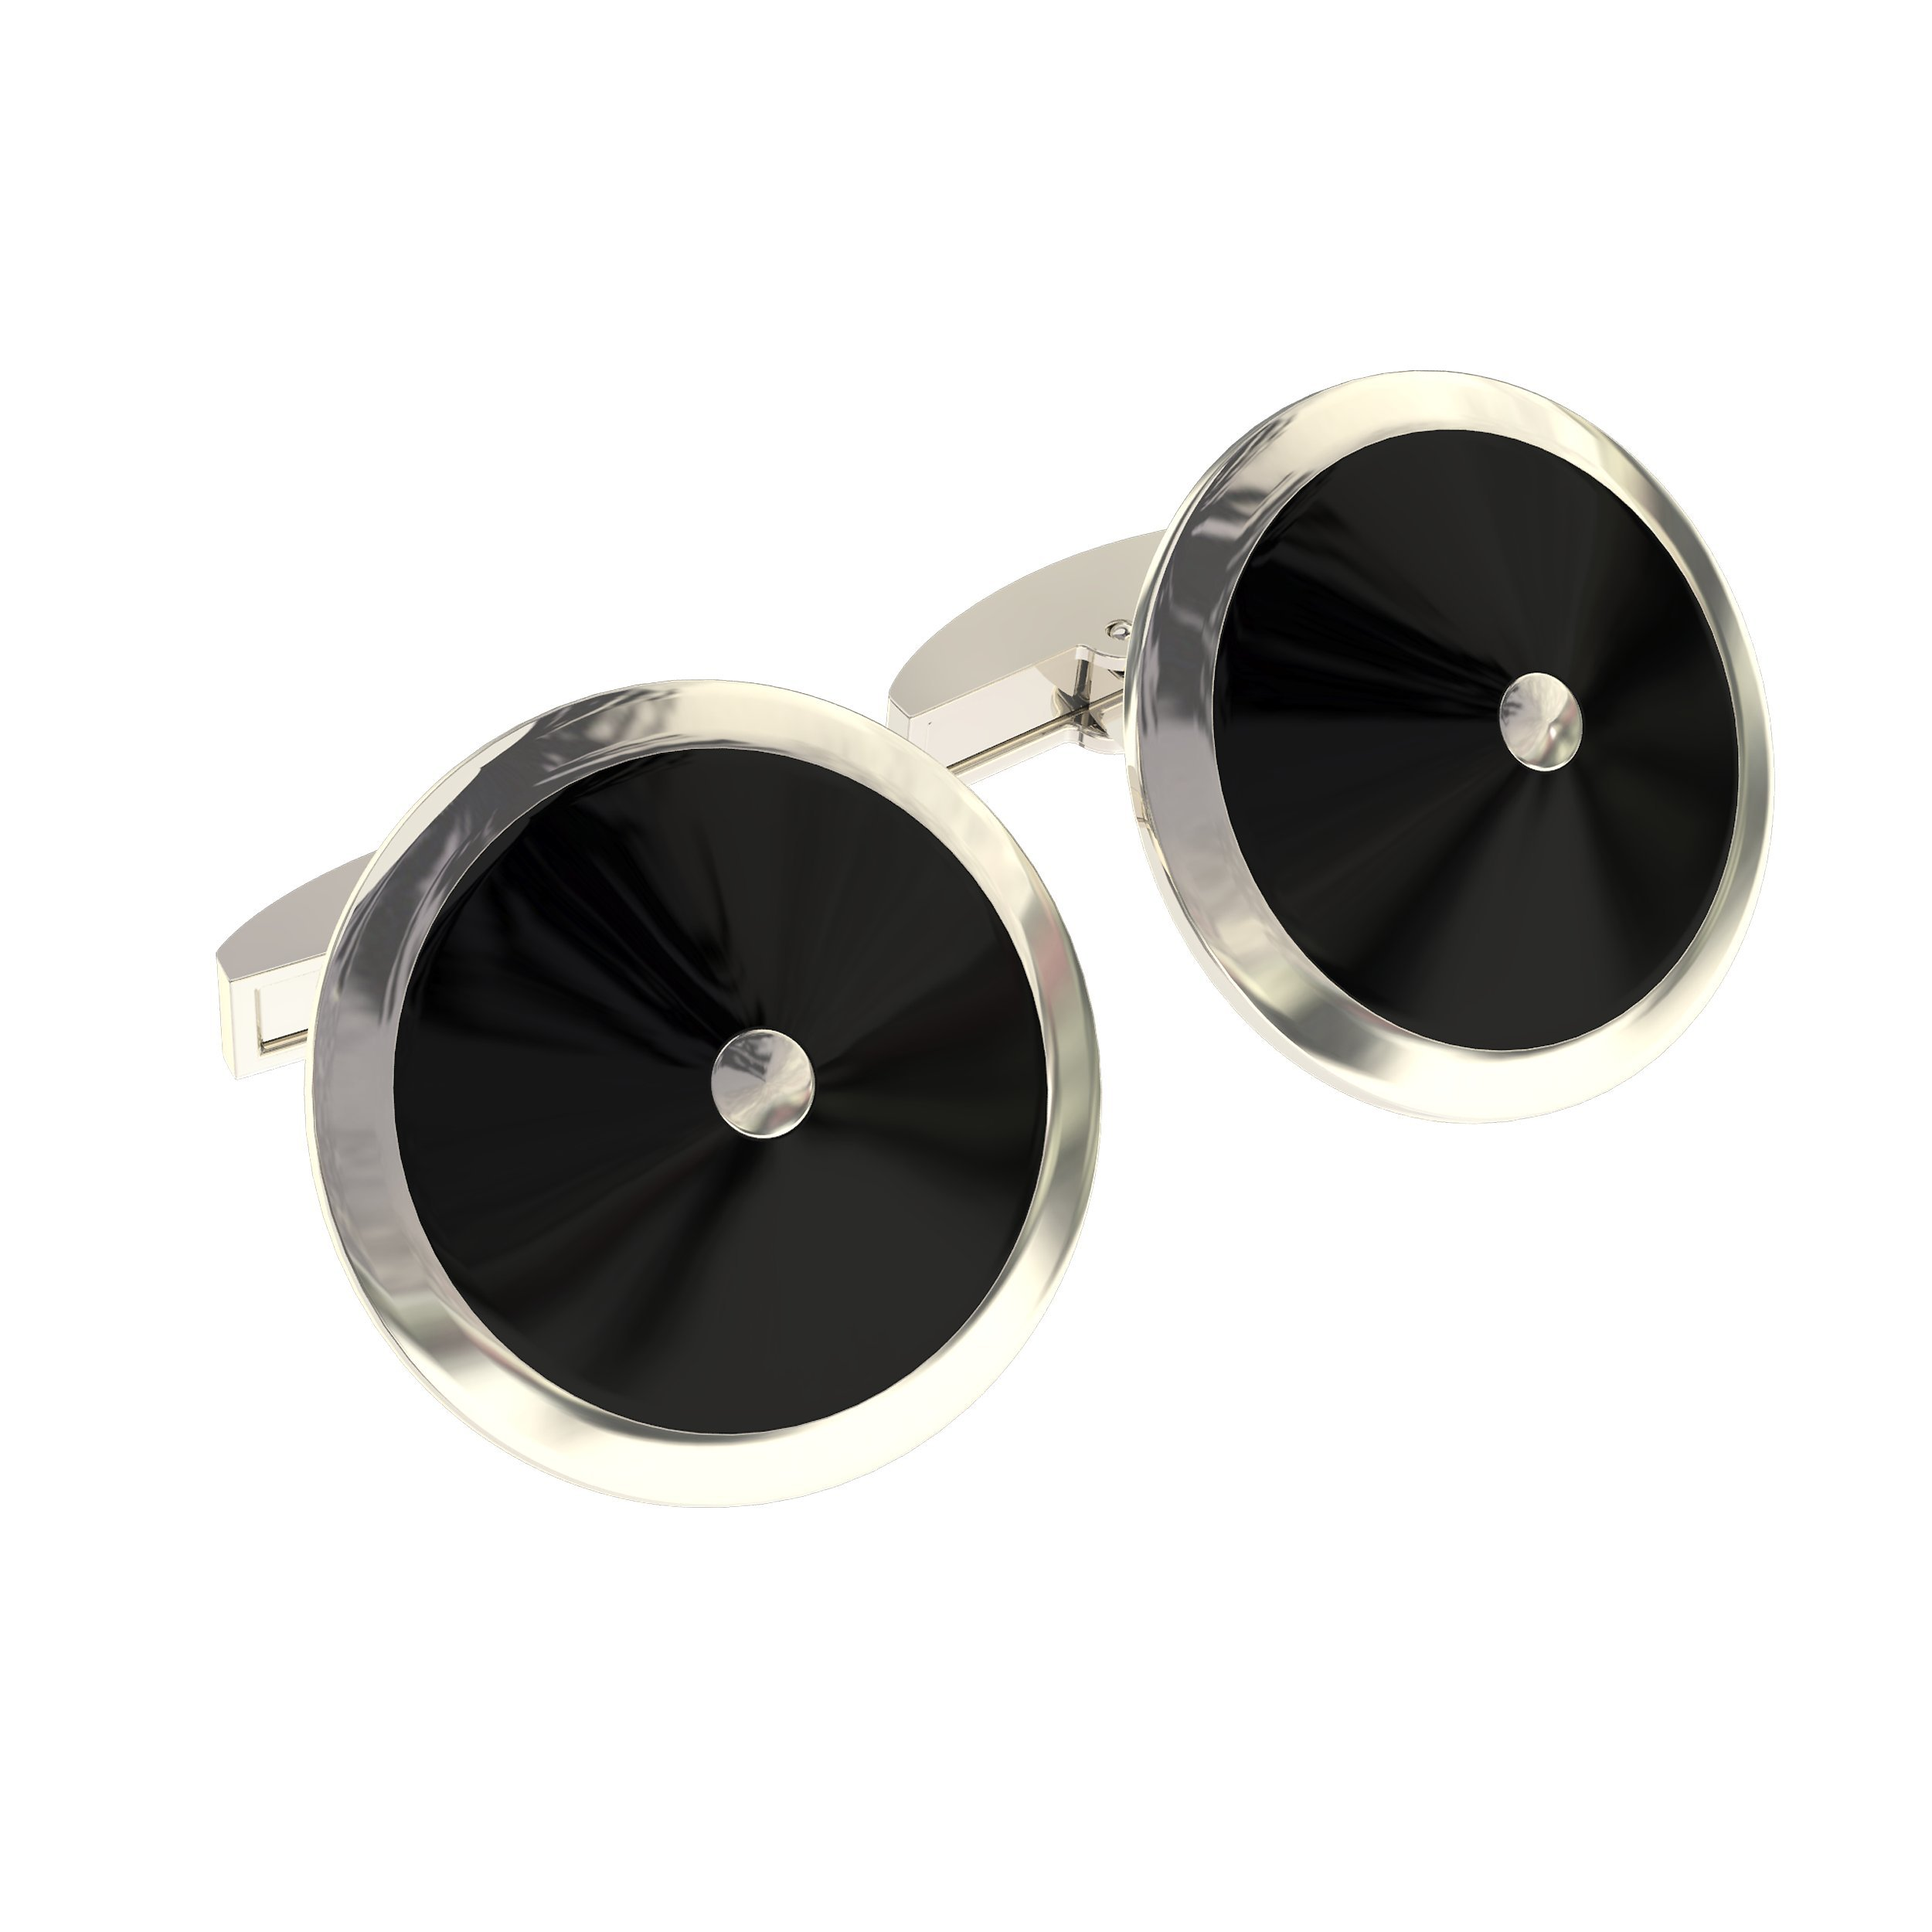 Cuff Link Set - Silver & Black Round for Men with Bonus Steel Collar Stays by Deluxury Fine Accessories (Image #1)